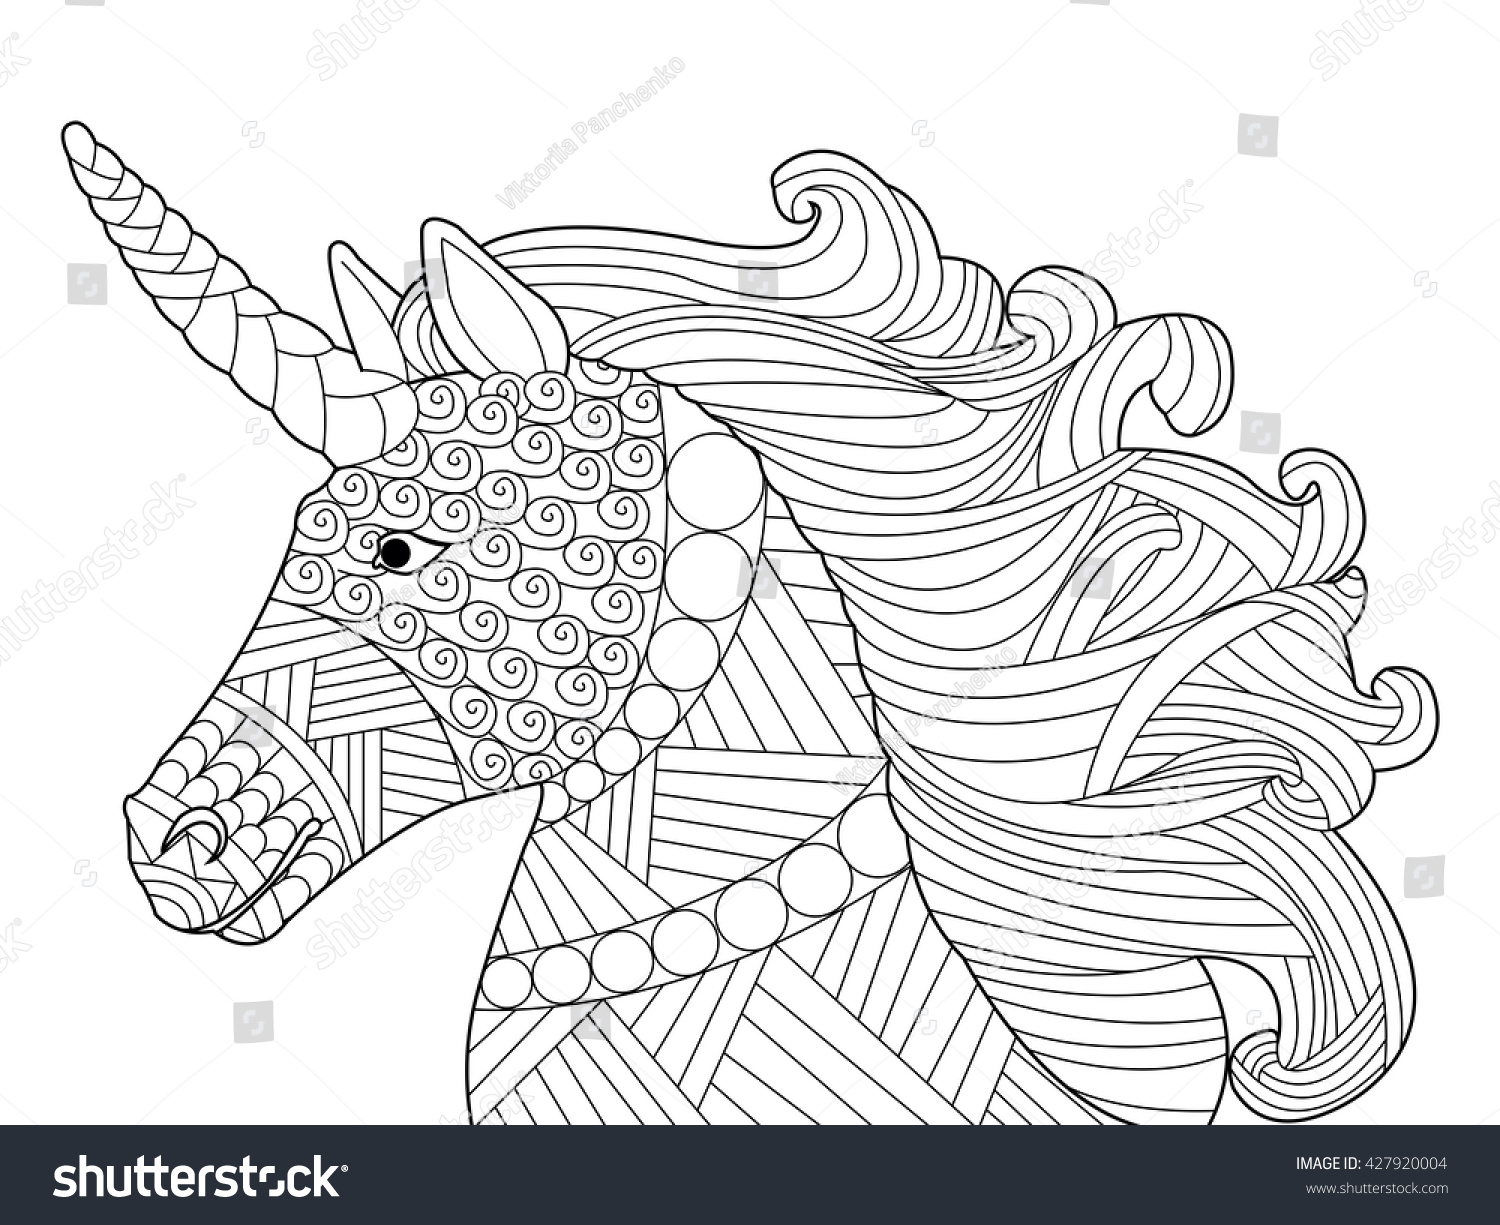 Abstract Unicorn Coloring Pages : Head unicorn coloring book adults vector stock